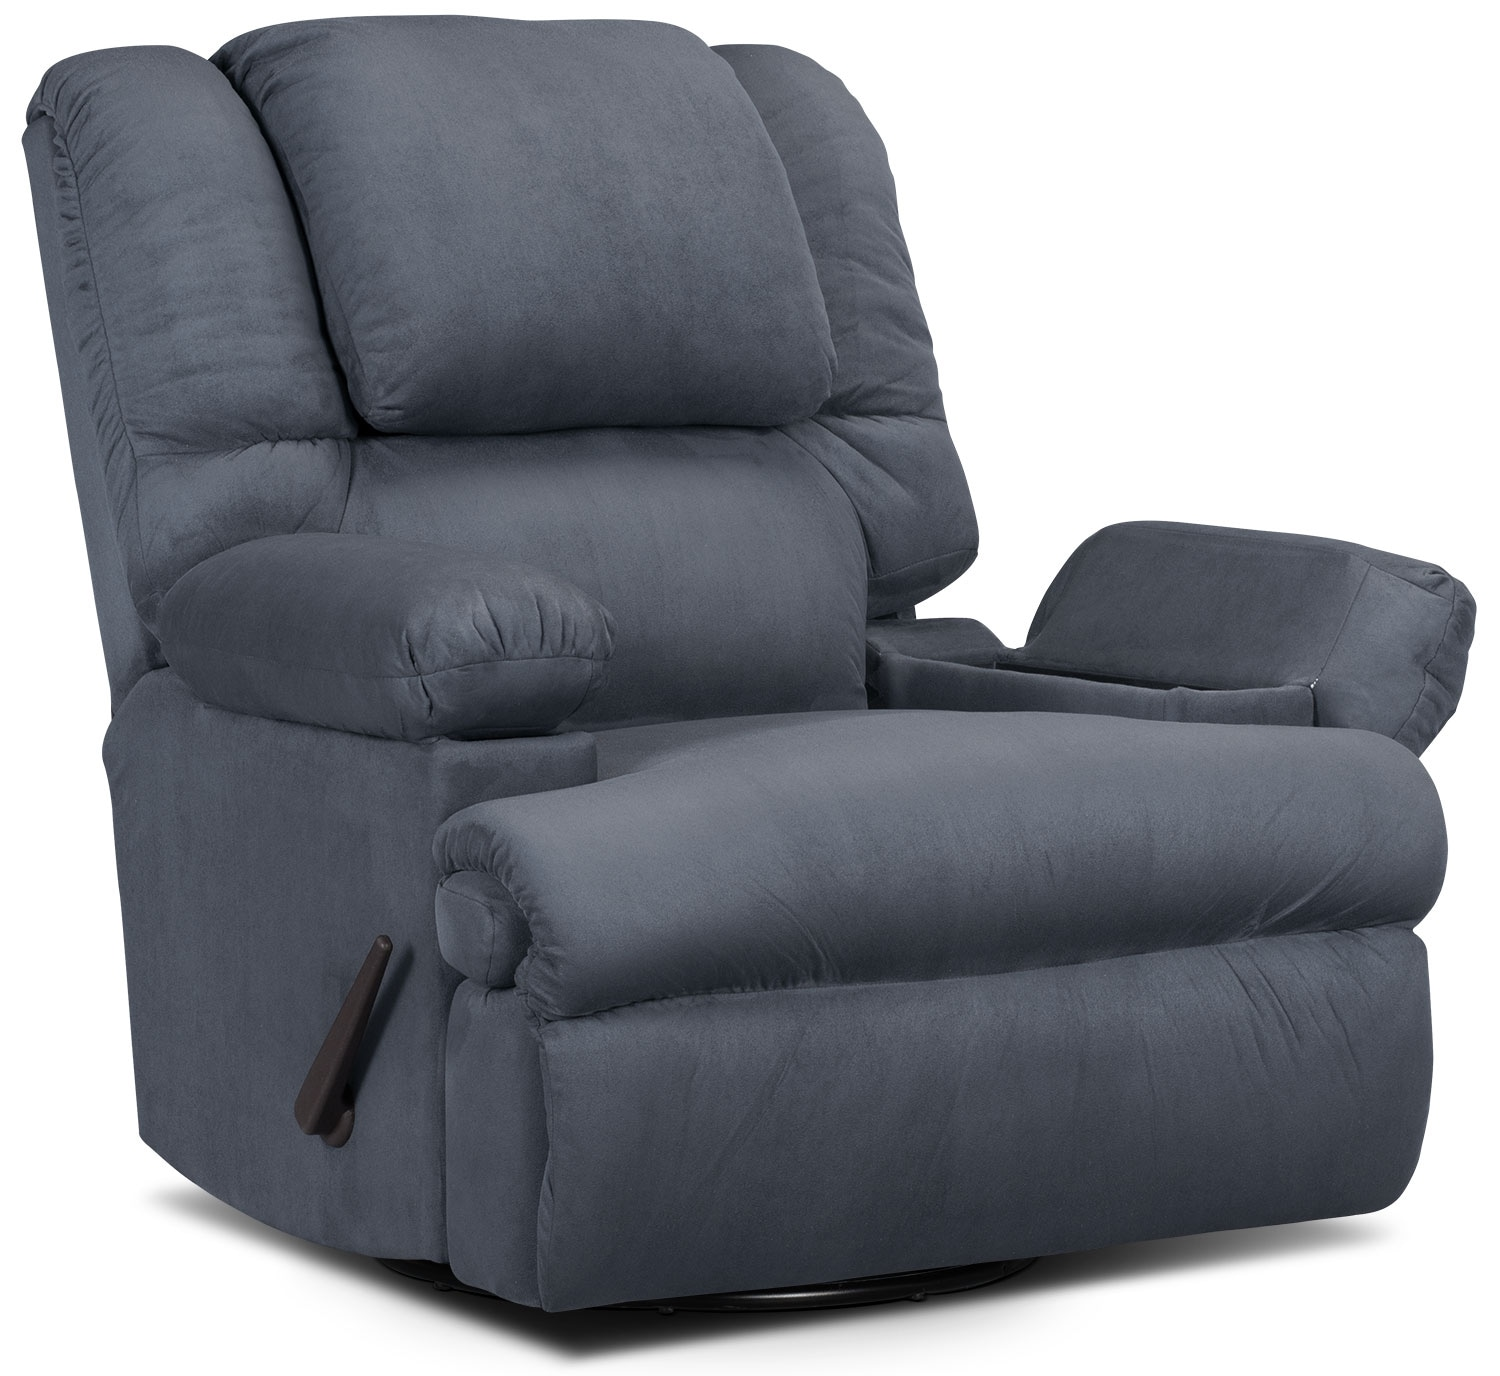 Designed2B Recliner 5598 Padded Suede Swivel Rocker with Storage Arms - Navy